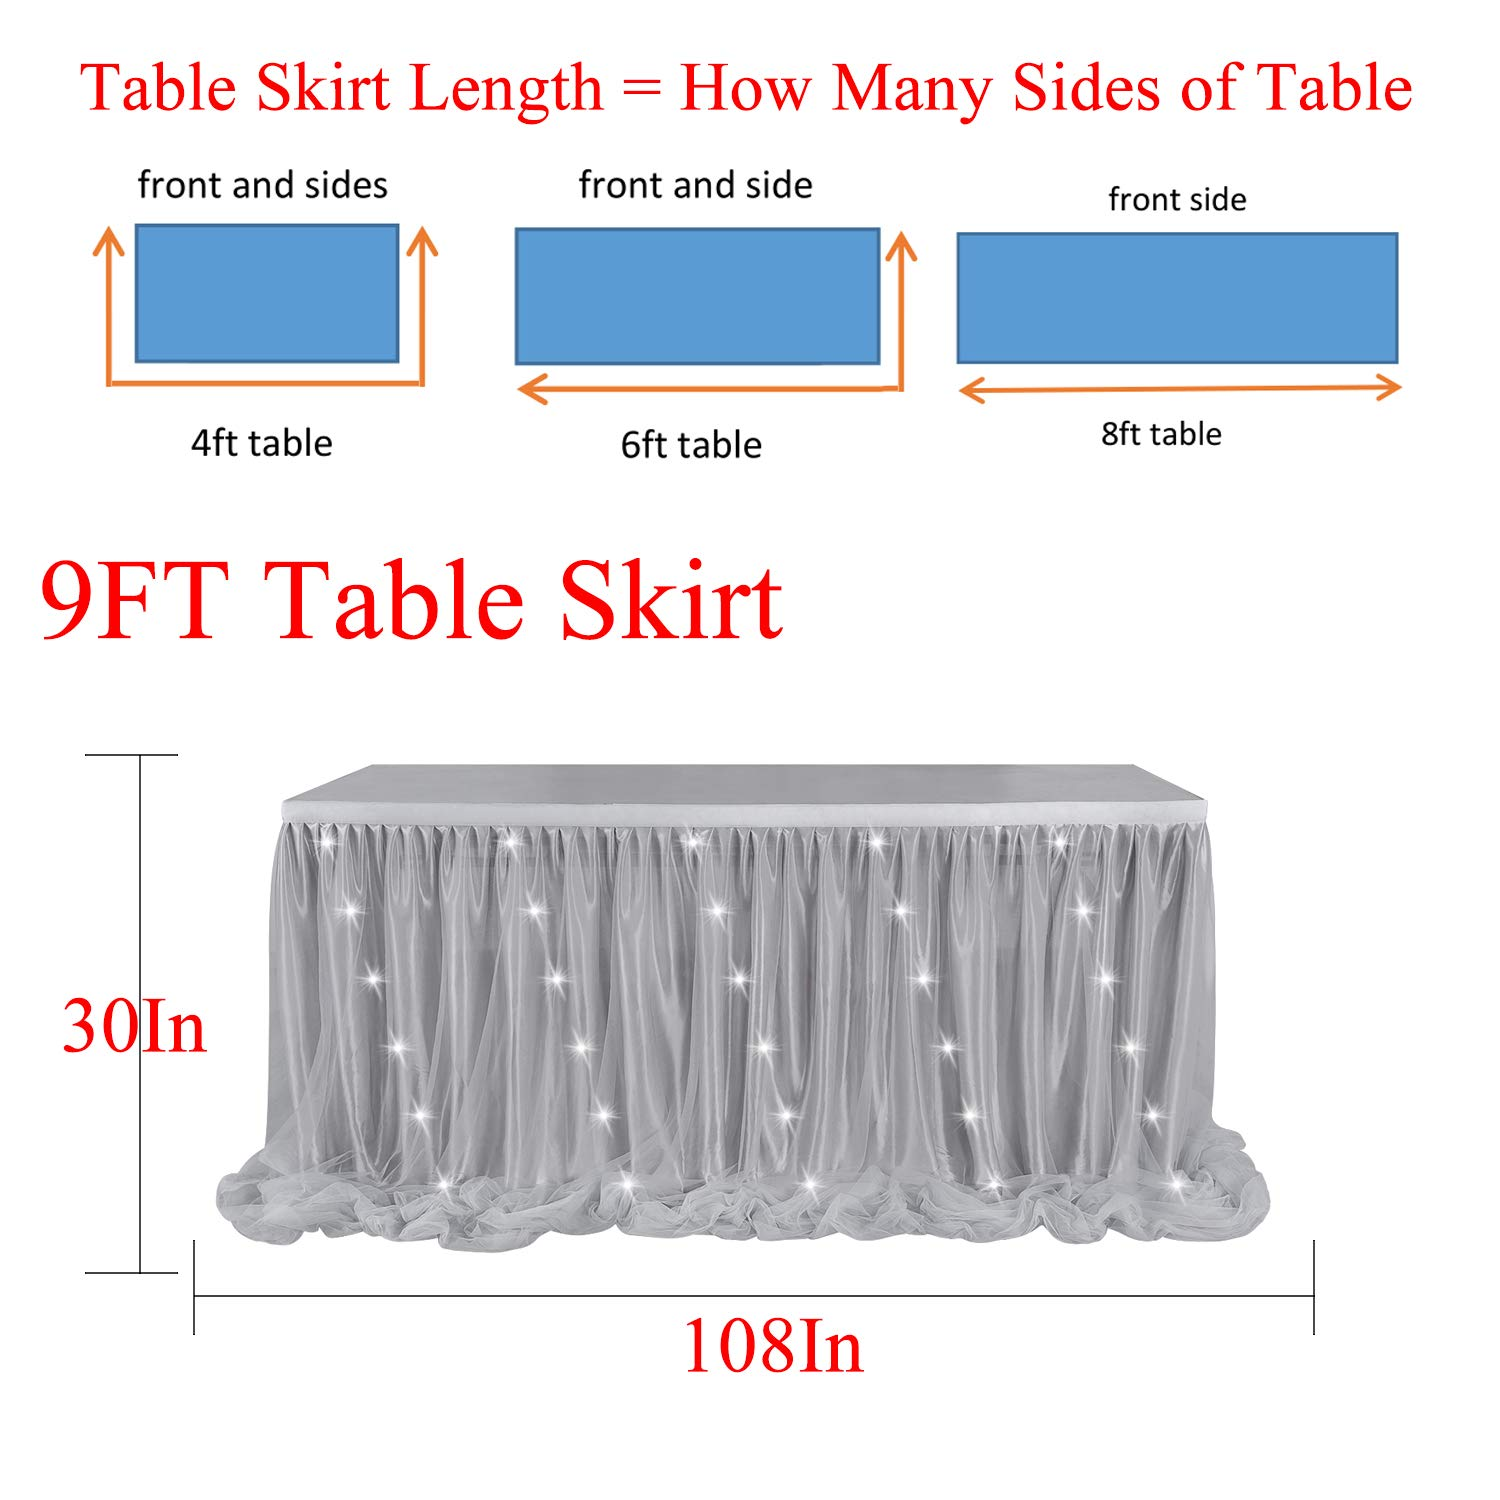 L9 ft LED Table Skirt 9ft Pink Tulle Table Skirt Tutu Table Cloth Skirting for Rectangle or Round Table for Baby Shower Wedding and Birthday Winter Party Decoration H30in